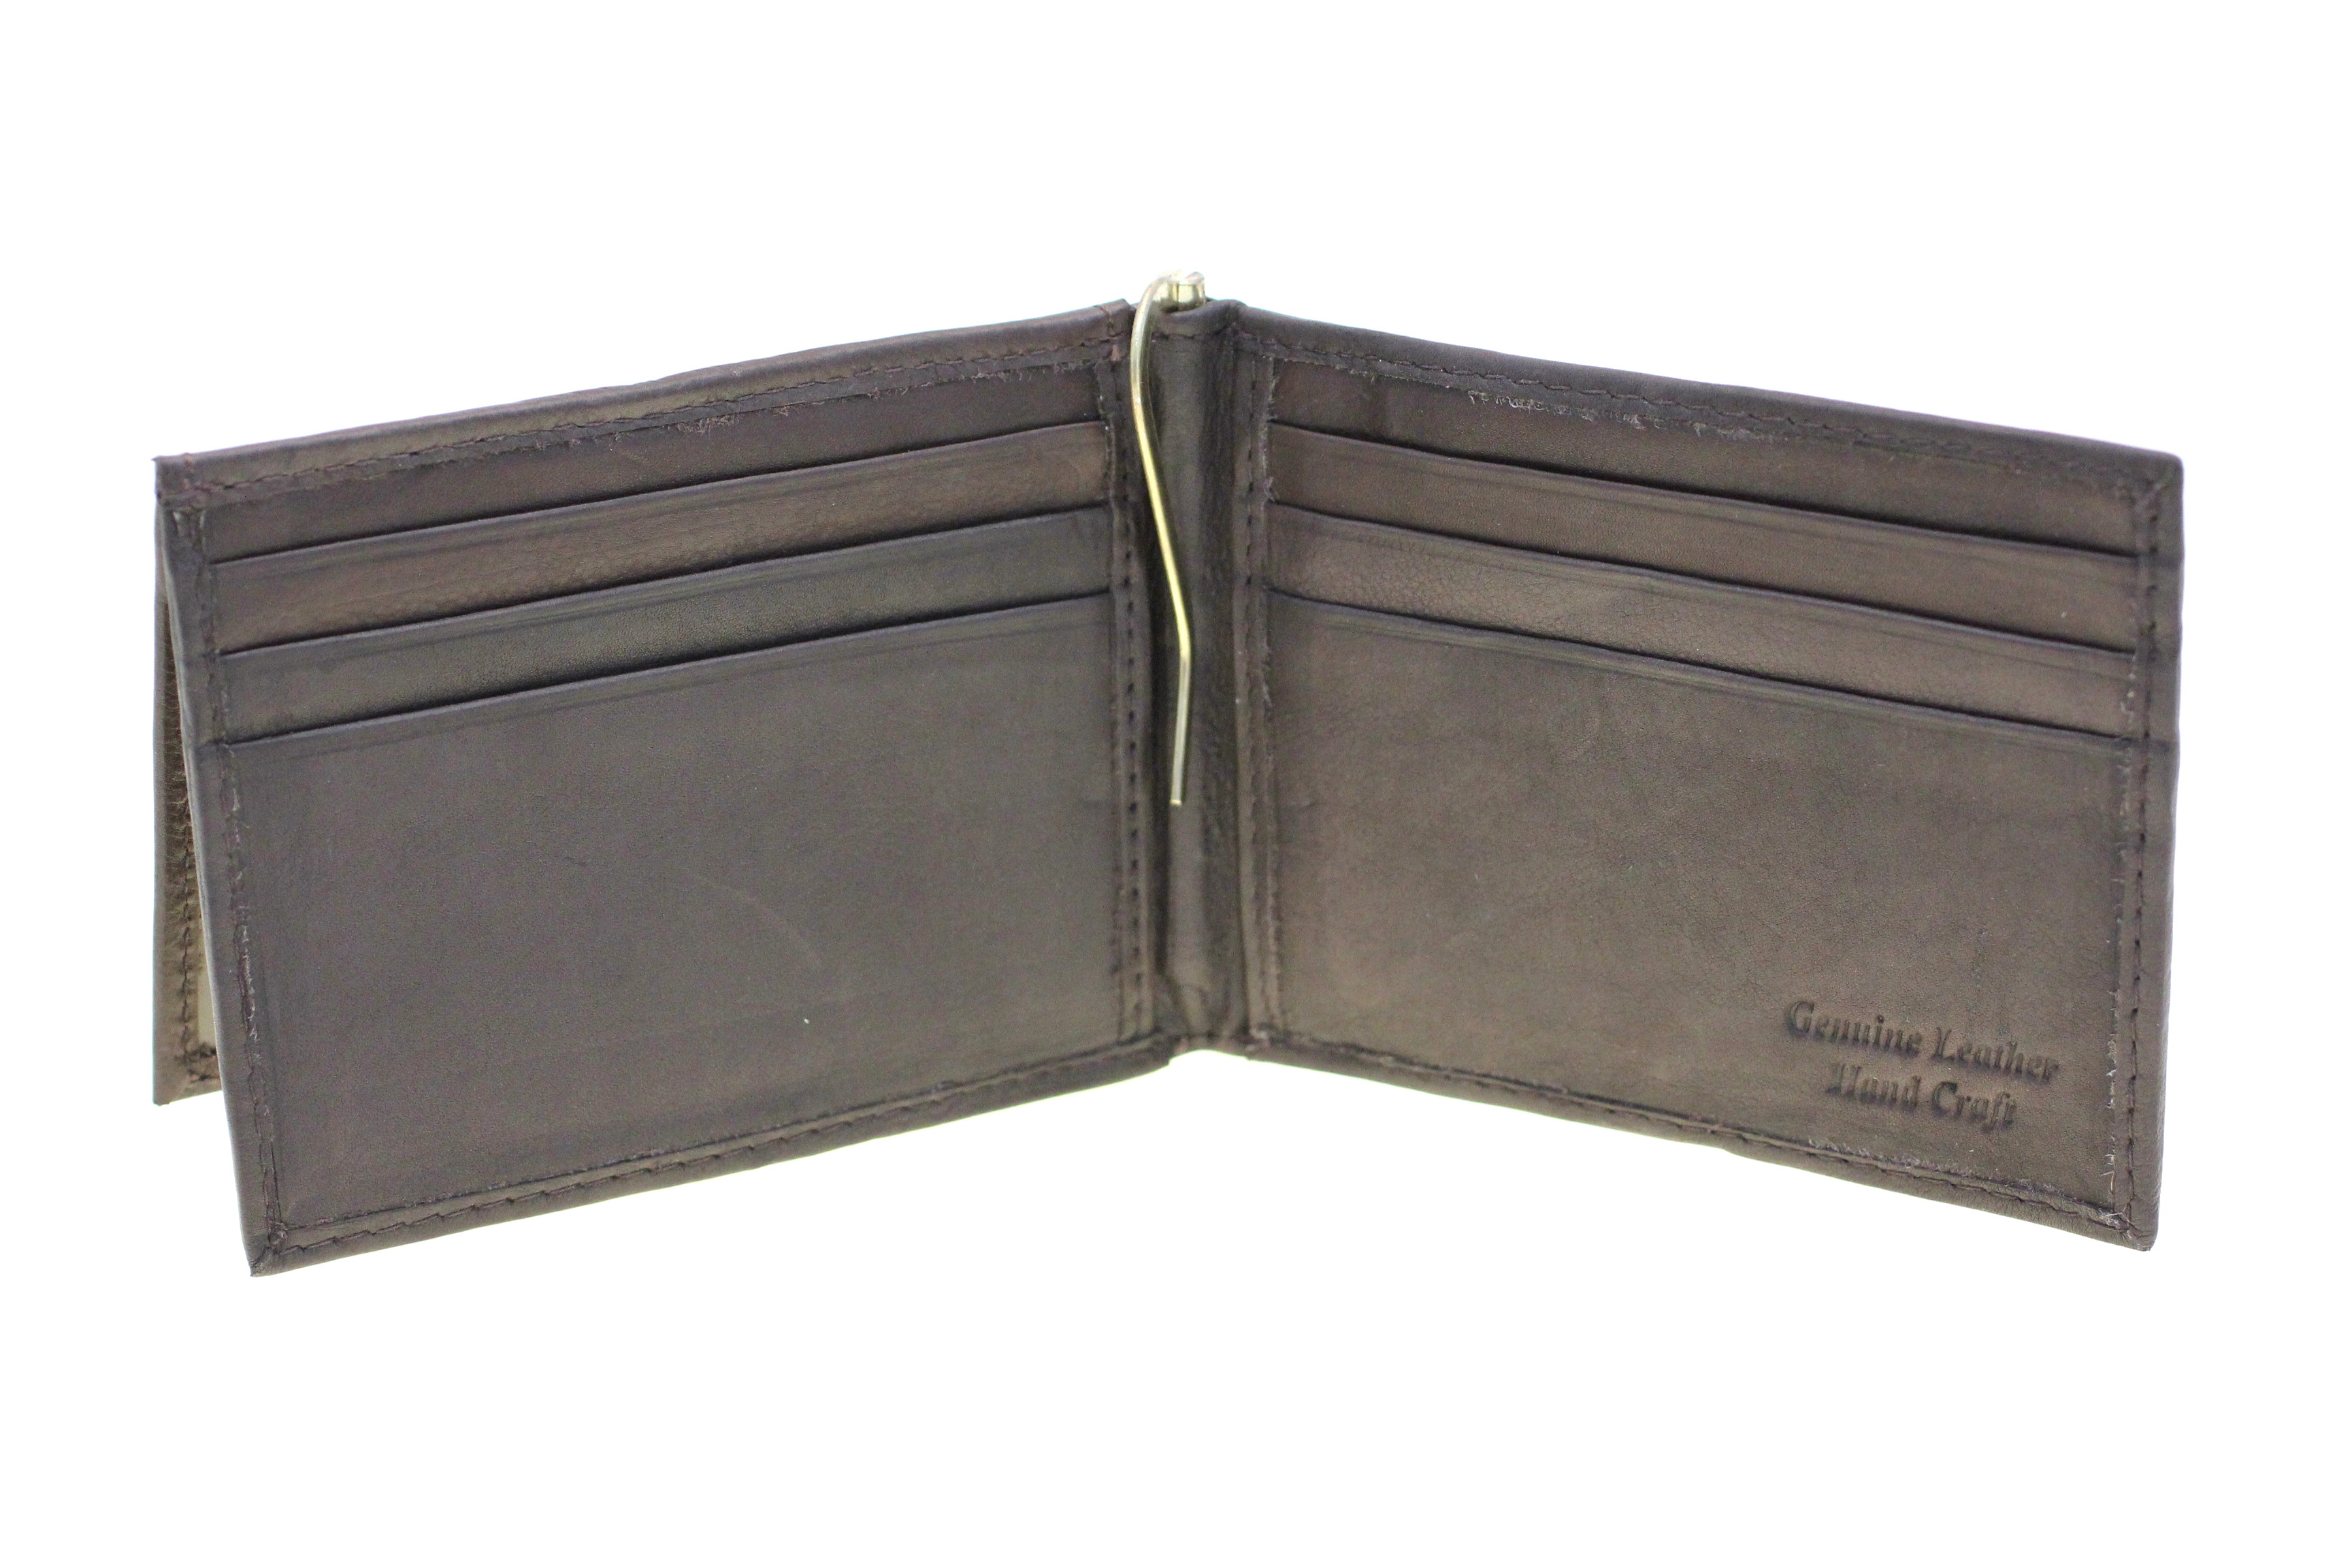 NEW PAUL /& TAYLOR LEATHER BIFOLD FRONT POCKET ID WALLET WITH MONEY CLIP BLACK